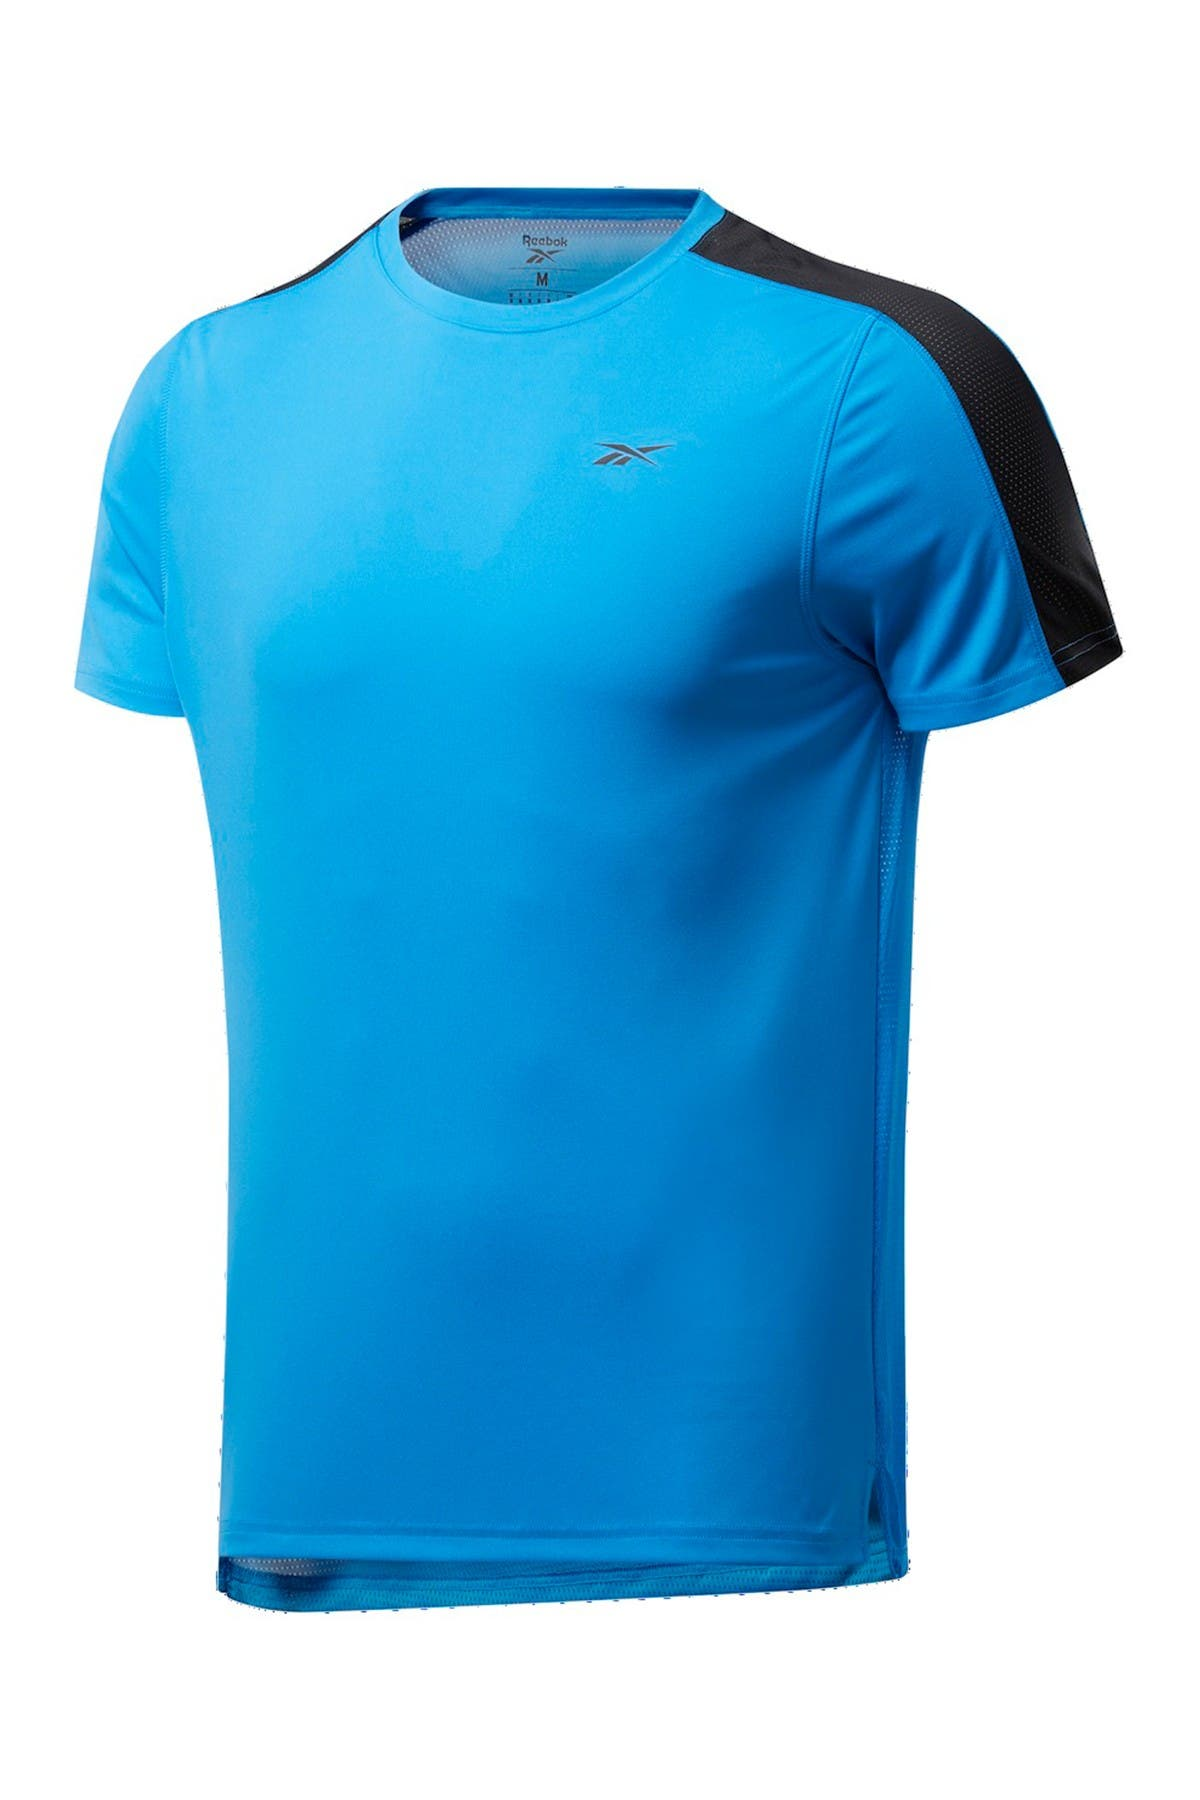 Image of Reebok Workout Ready Tech T-Shirt